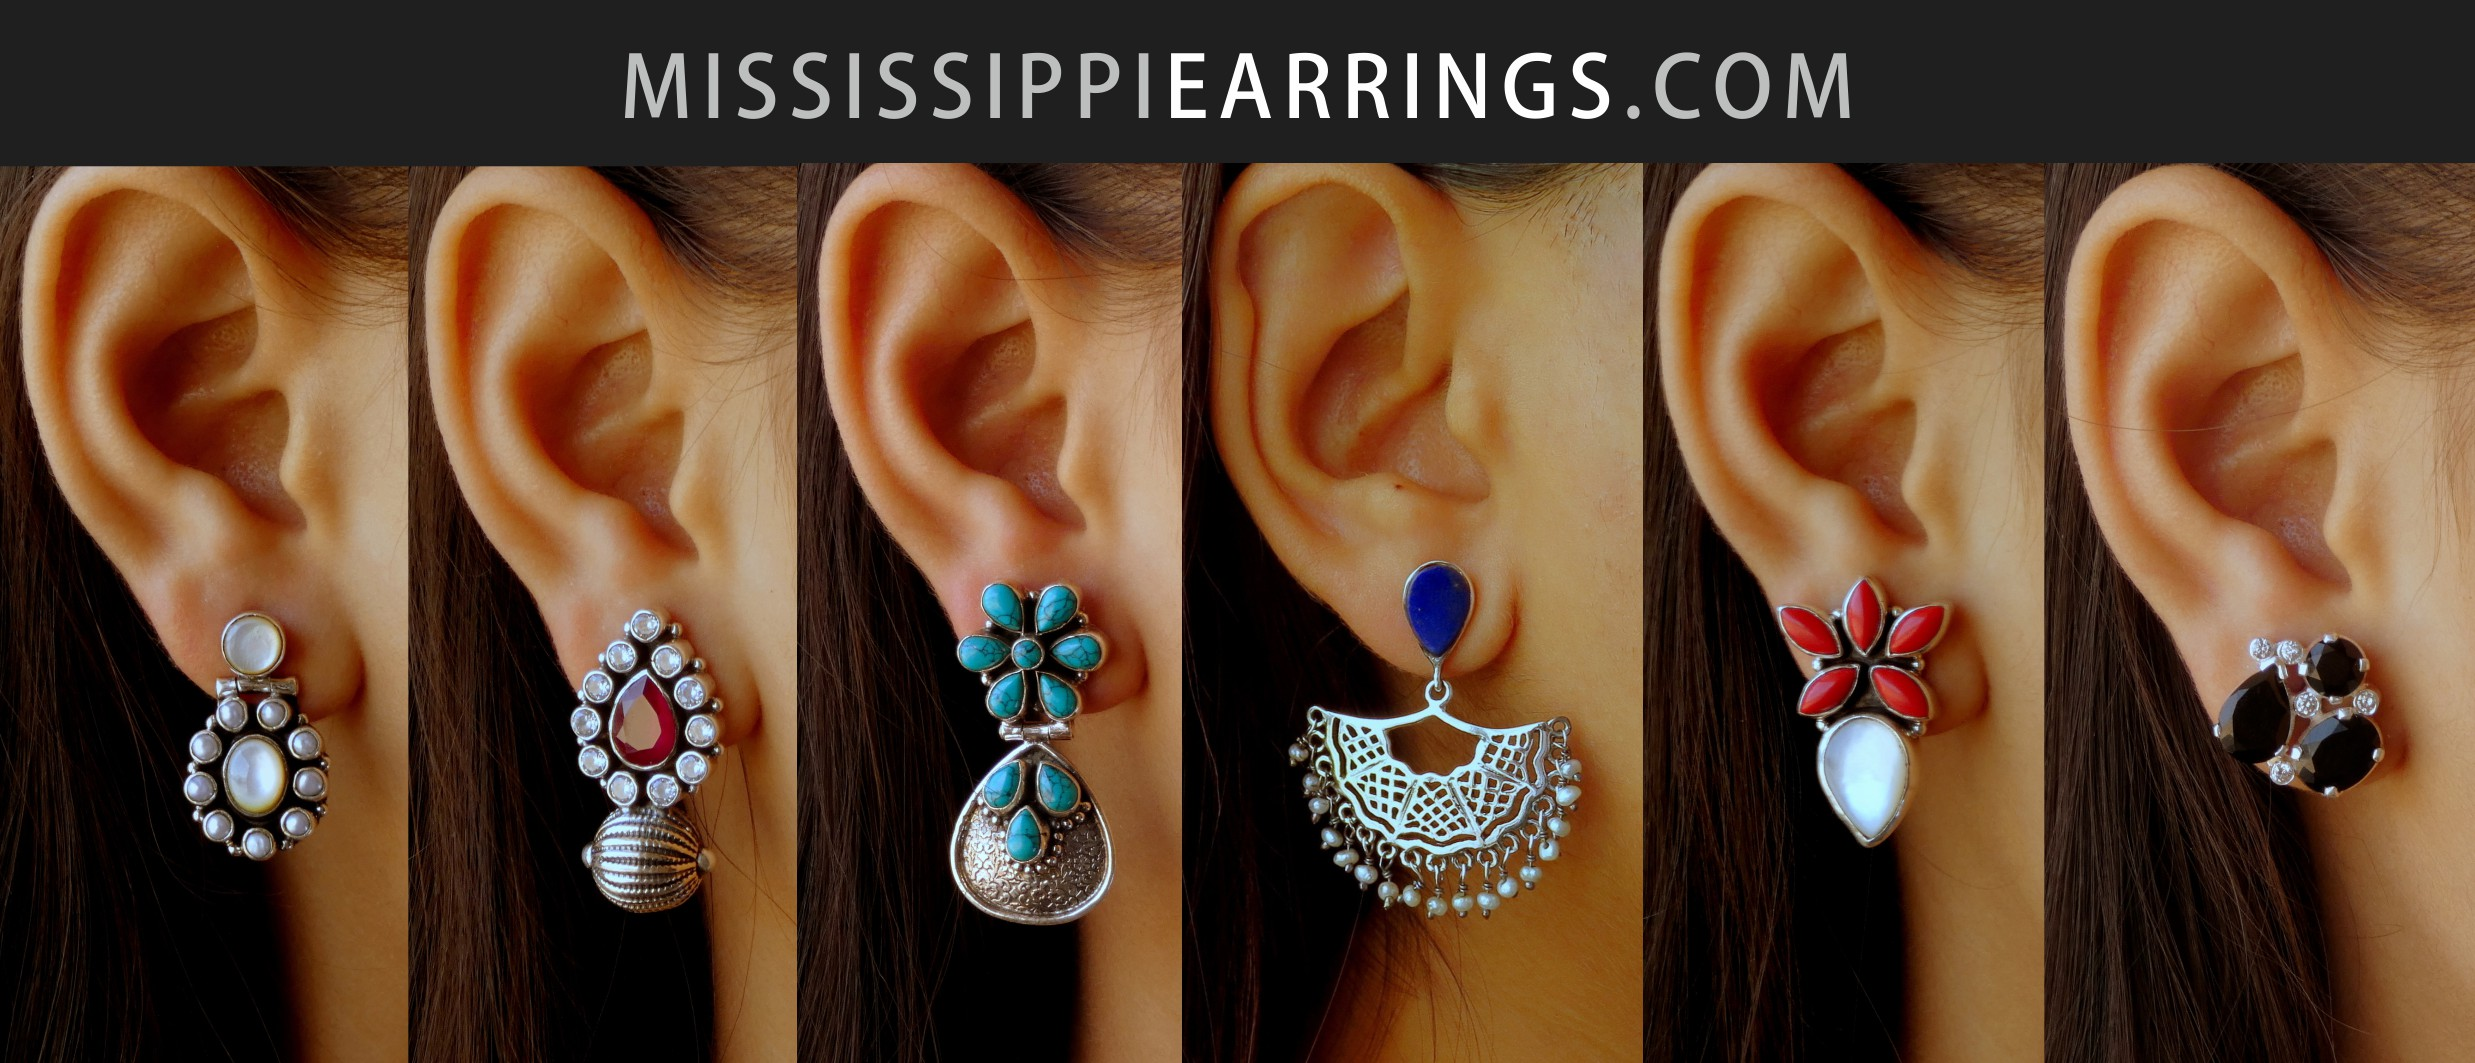 Mississippi Earrings | lyrical earrings in sterling silver